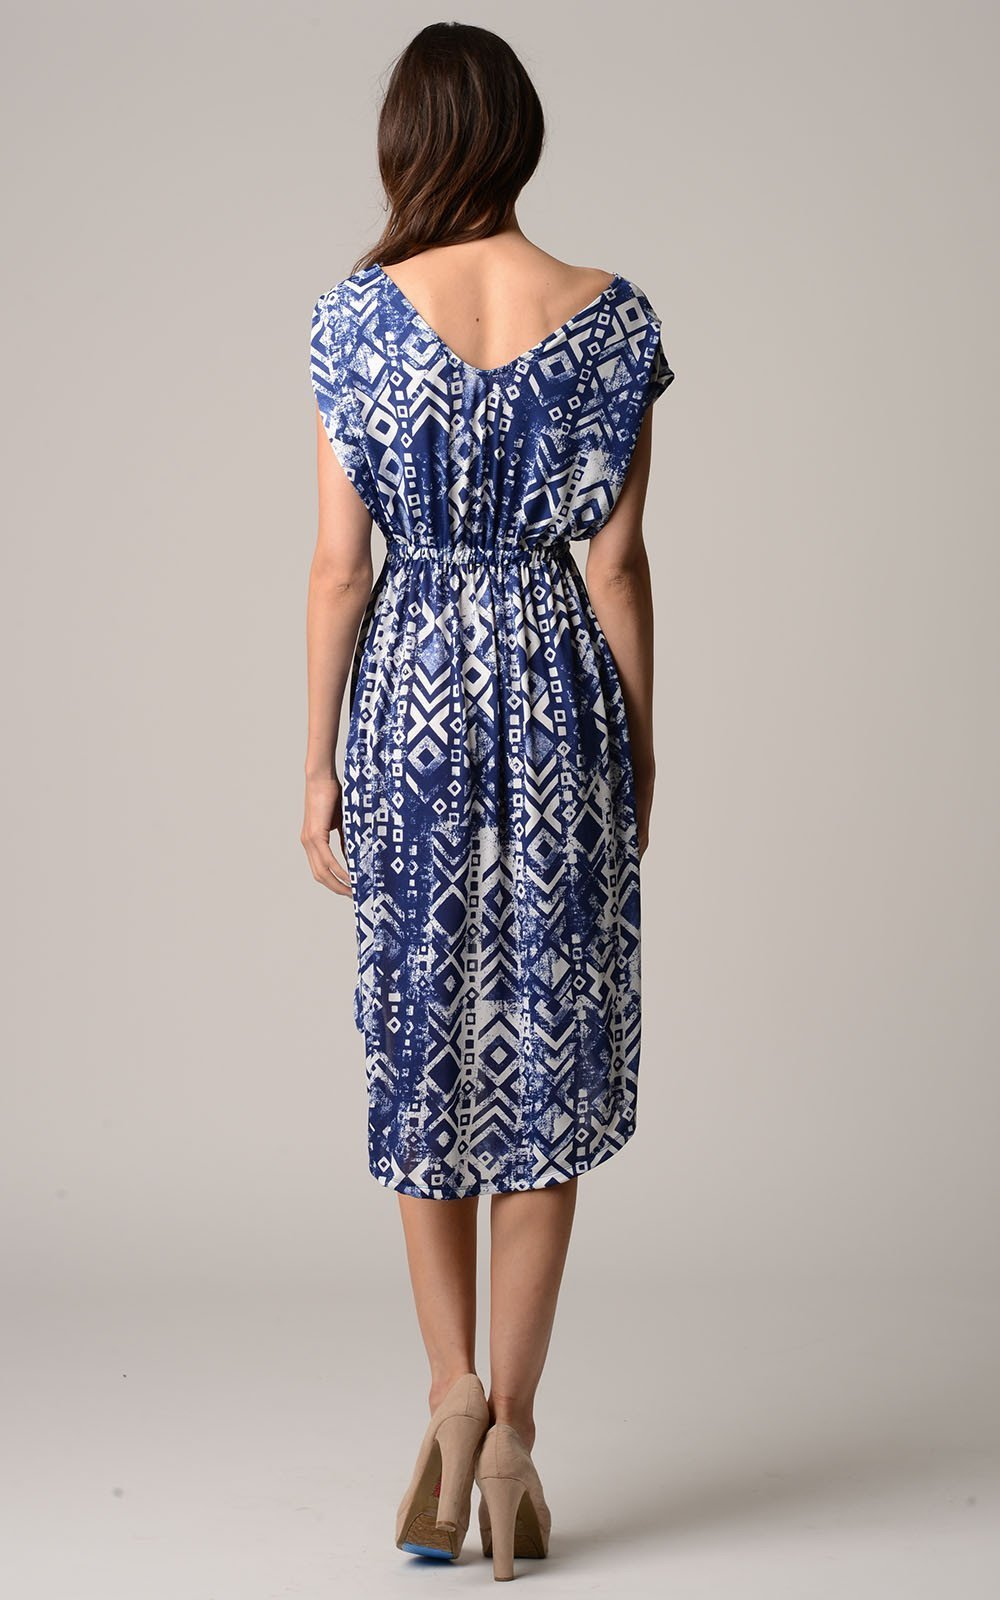 Women's Printed Hi-Low Dress - Danish Fashion & Living Online Store SALE